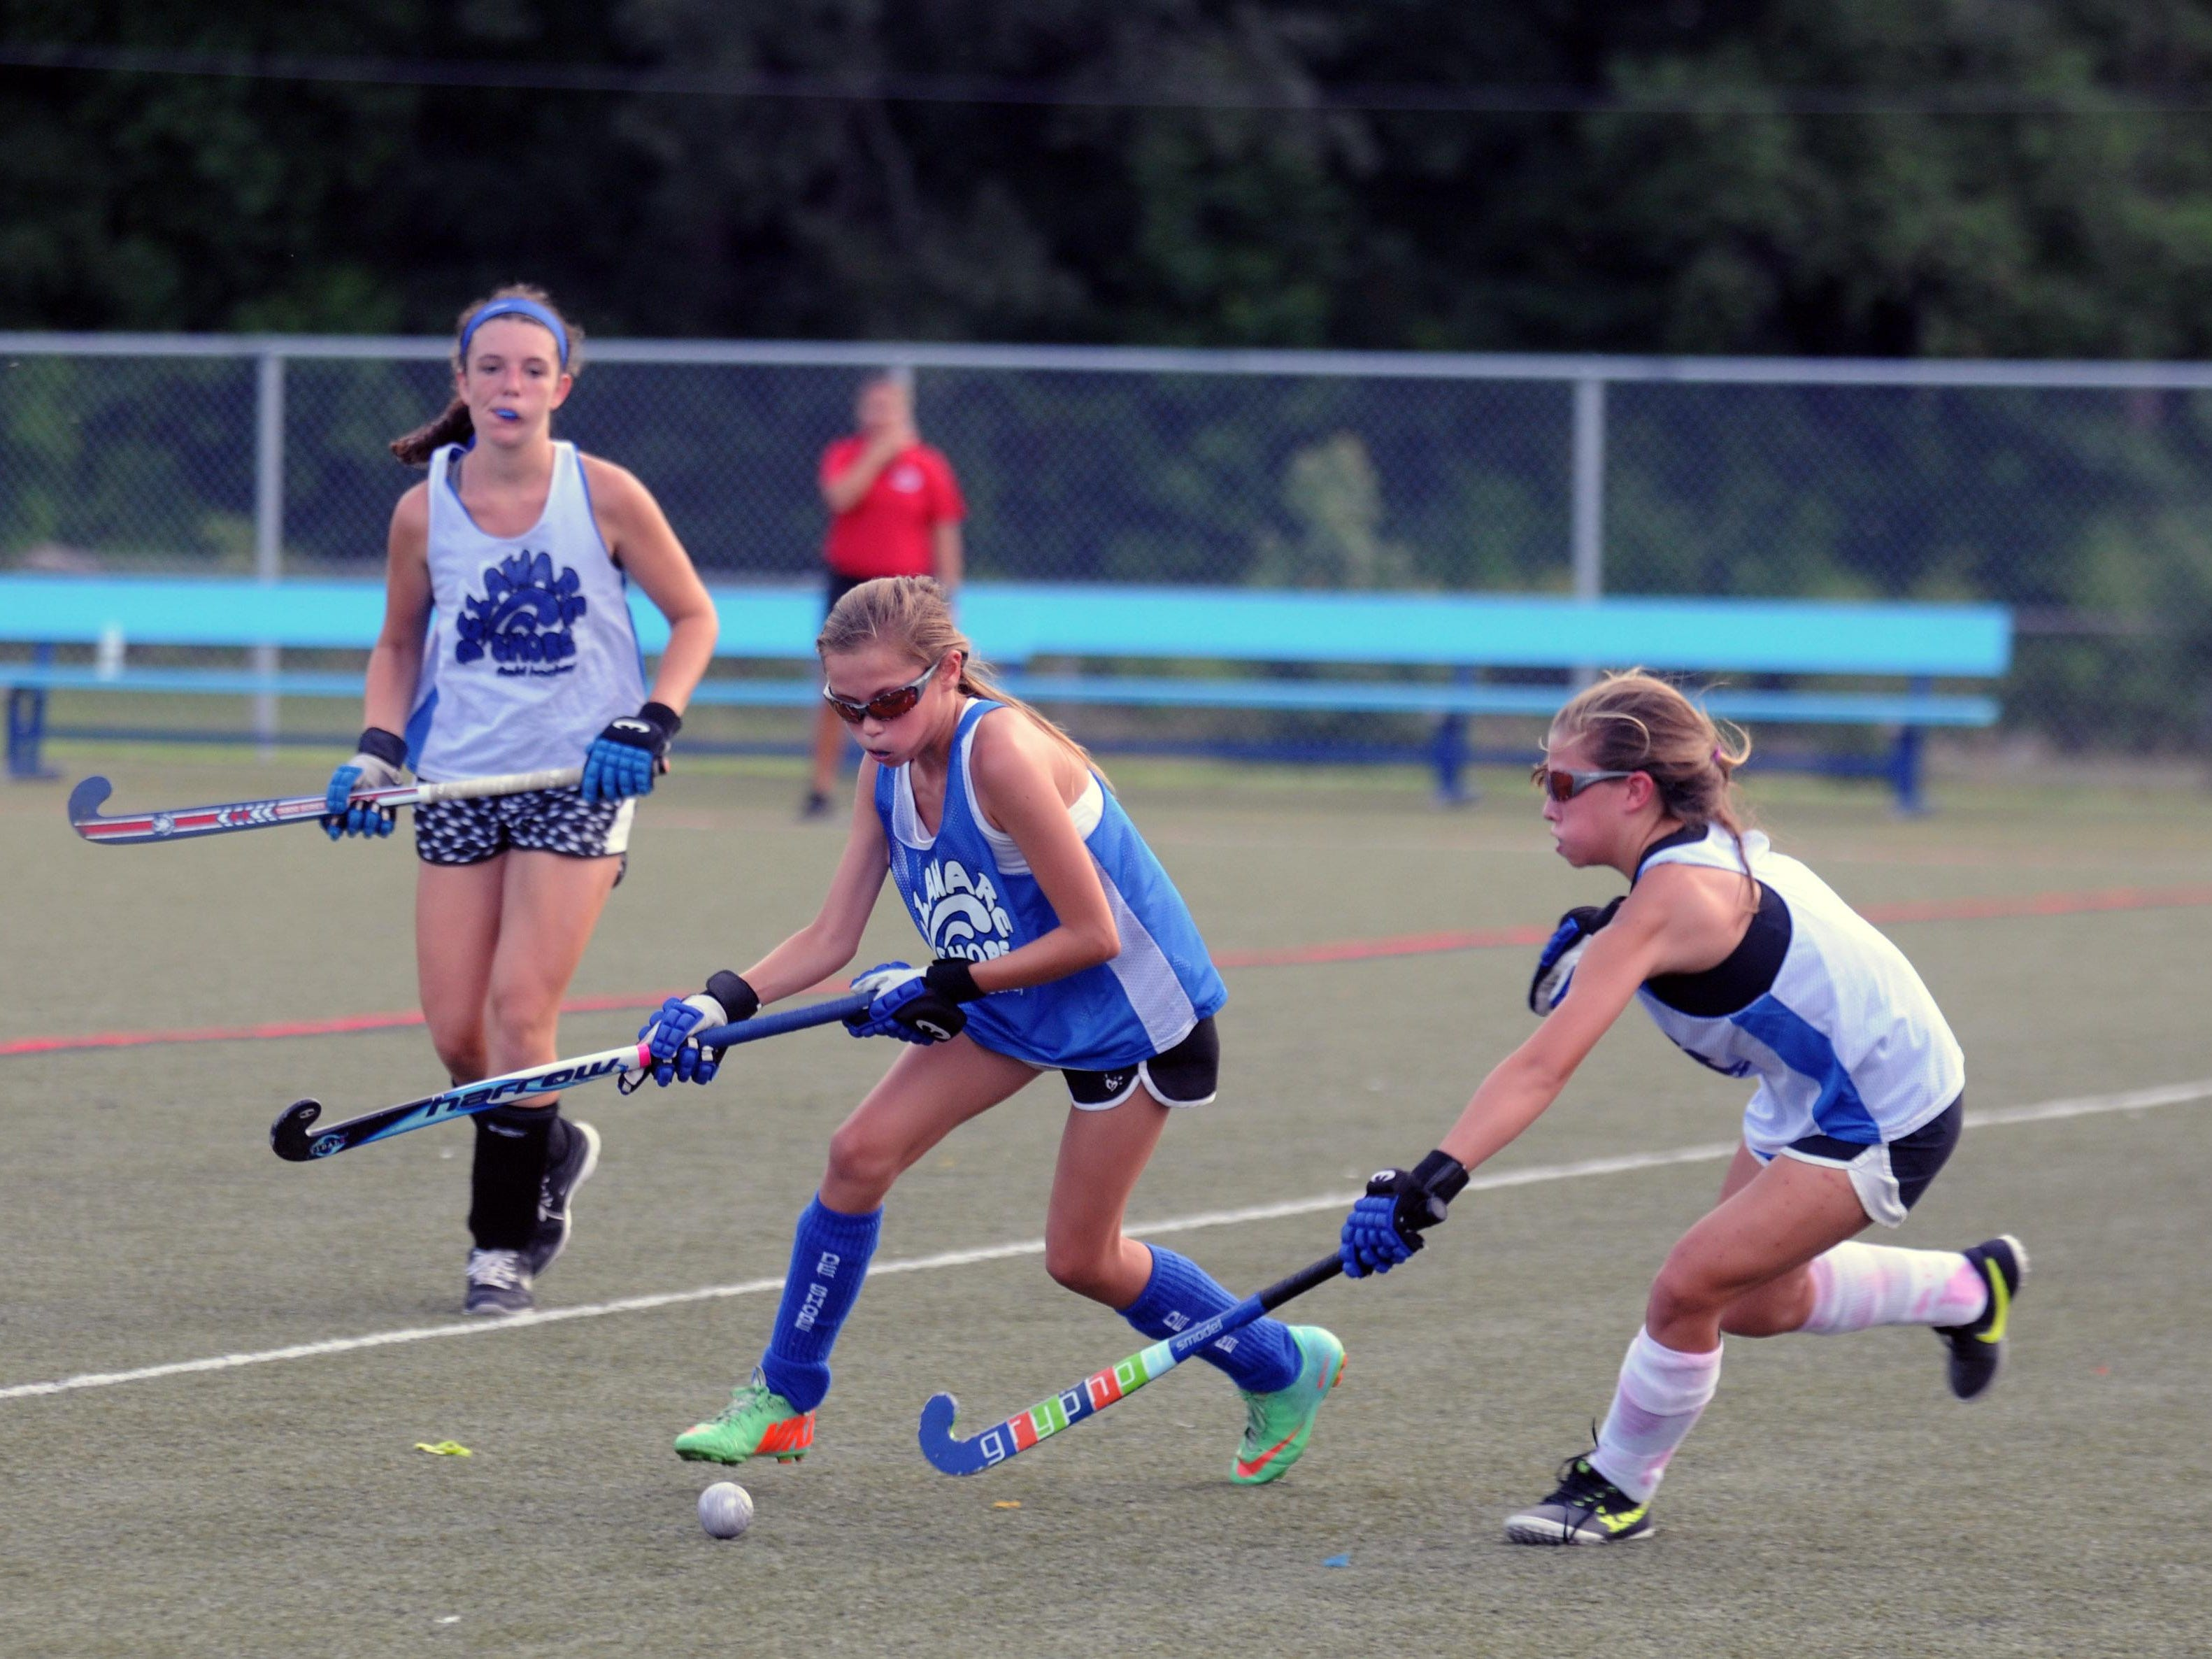 Players go for the ball and goalie during a summer league game for Delaware Shore Field Hockey at Cape Henlopen High School. Some of these players will be traveling with the U14 team to Disney World.